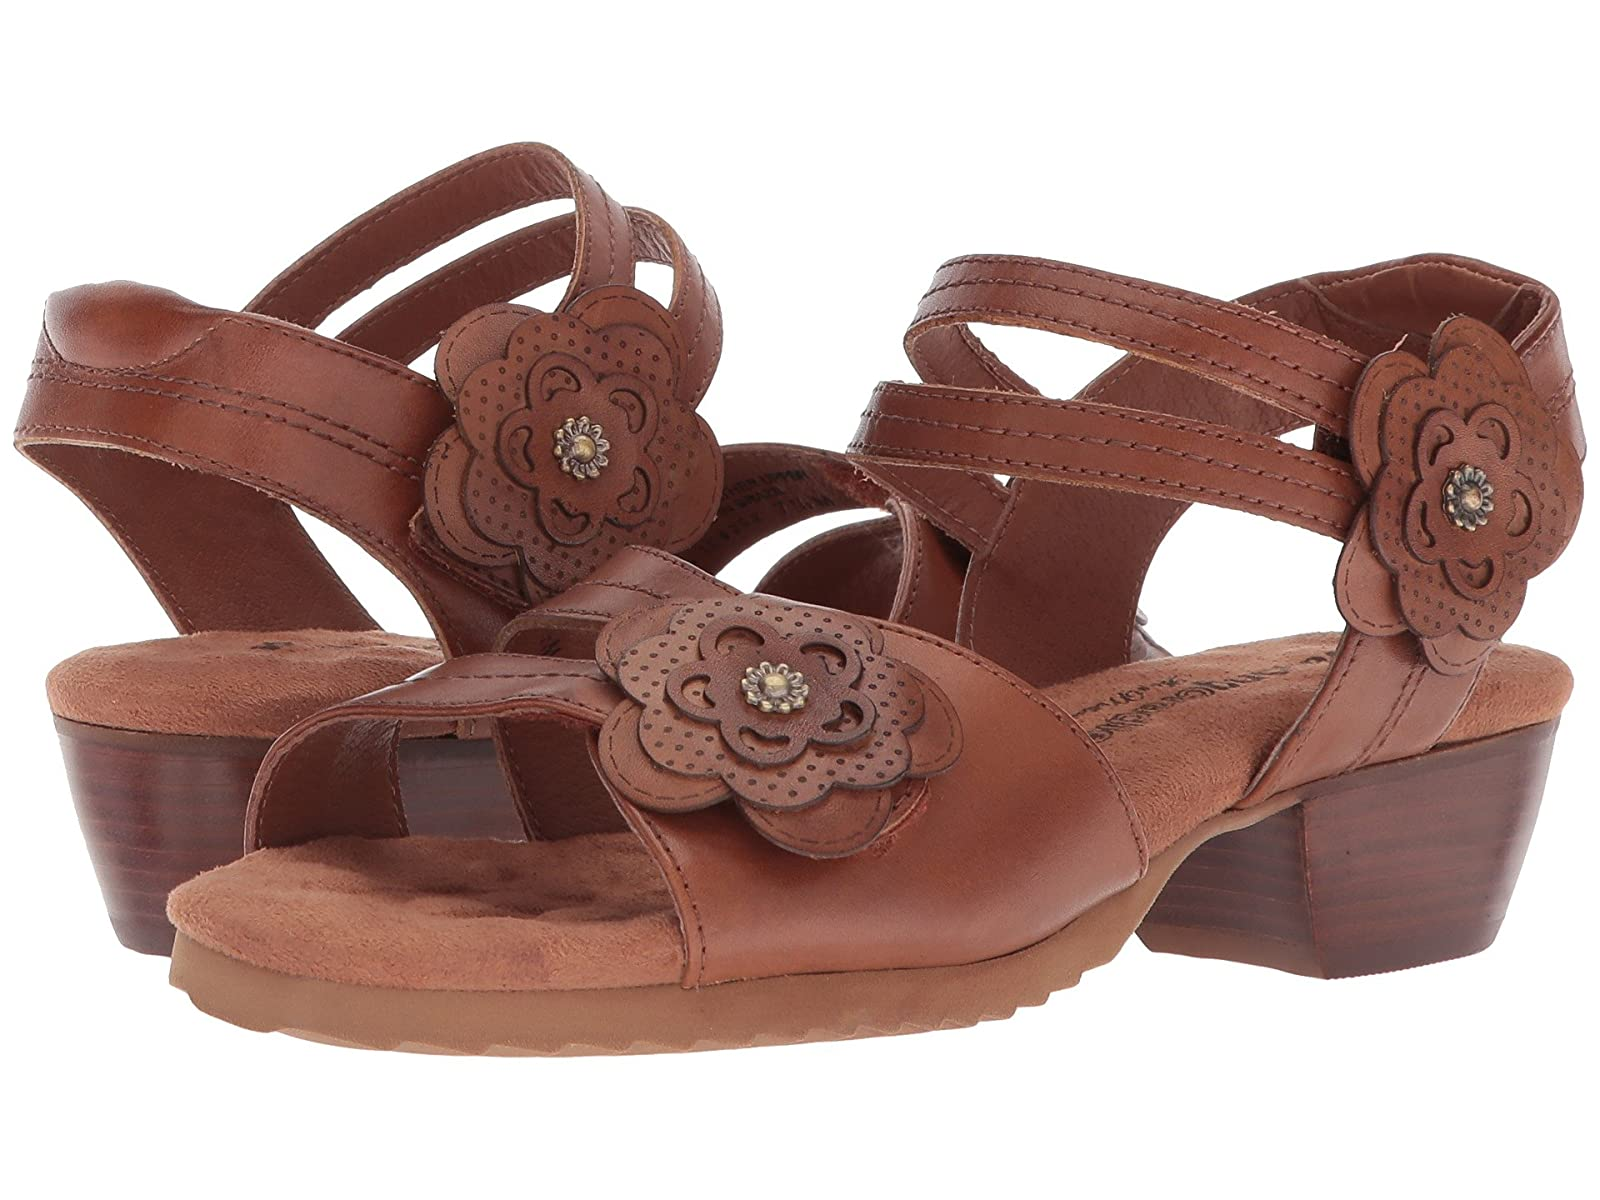 Walking Cradles CharlotteCheap and distinctive eye-catching shoes